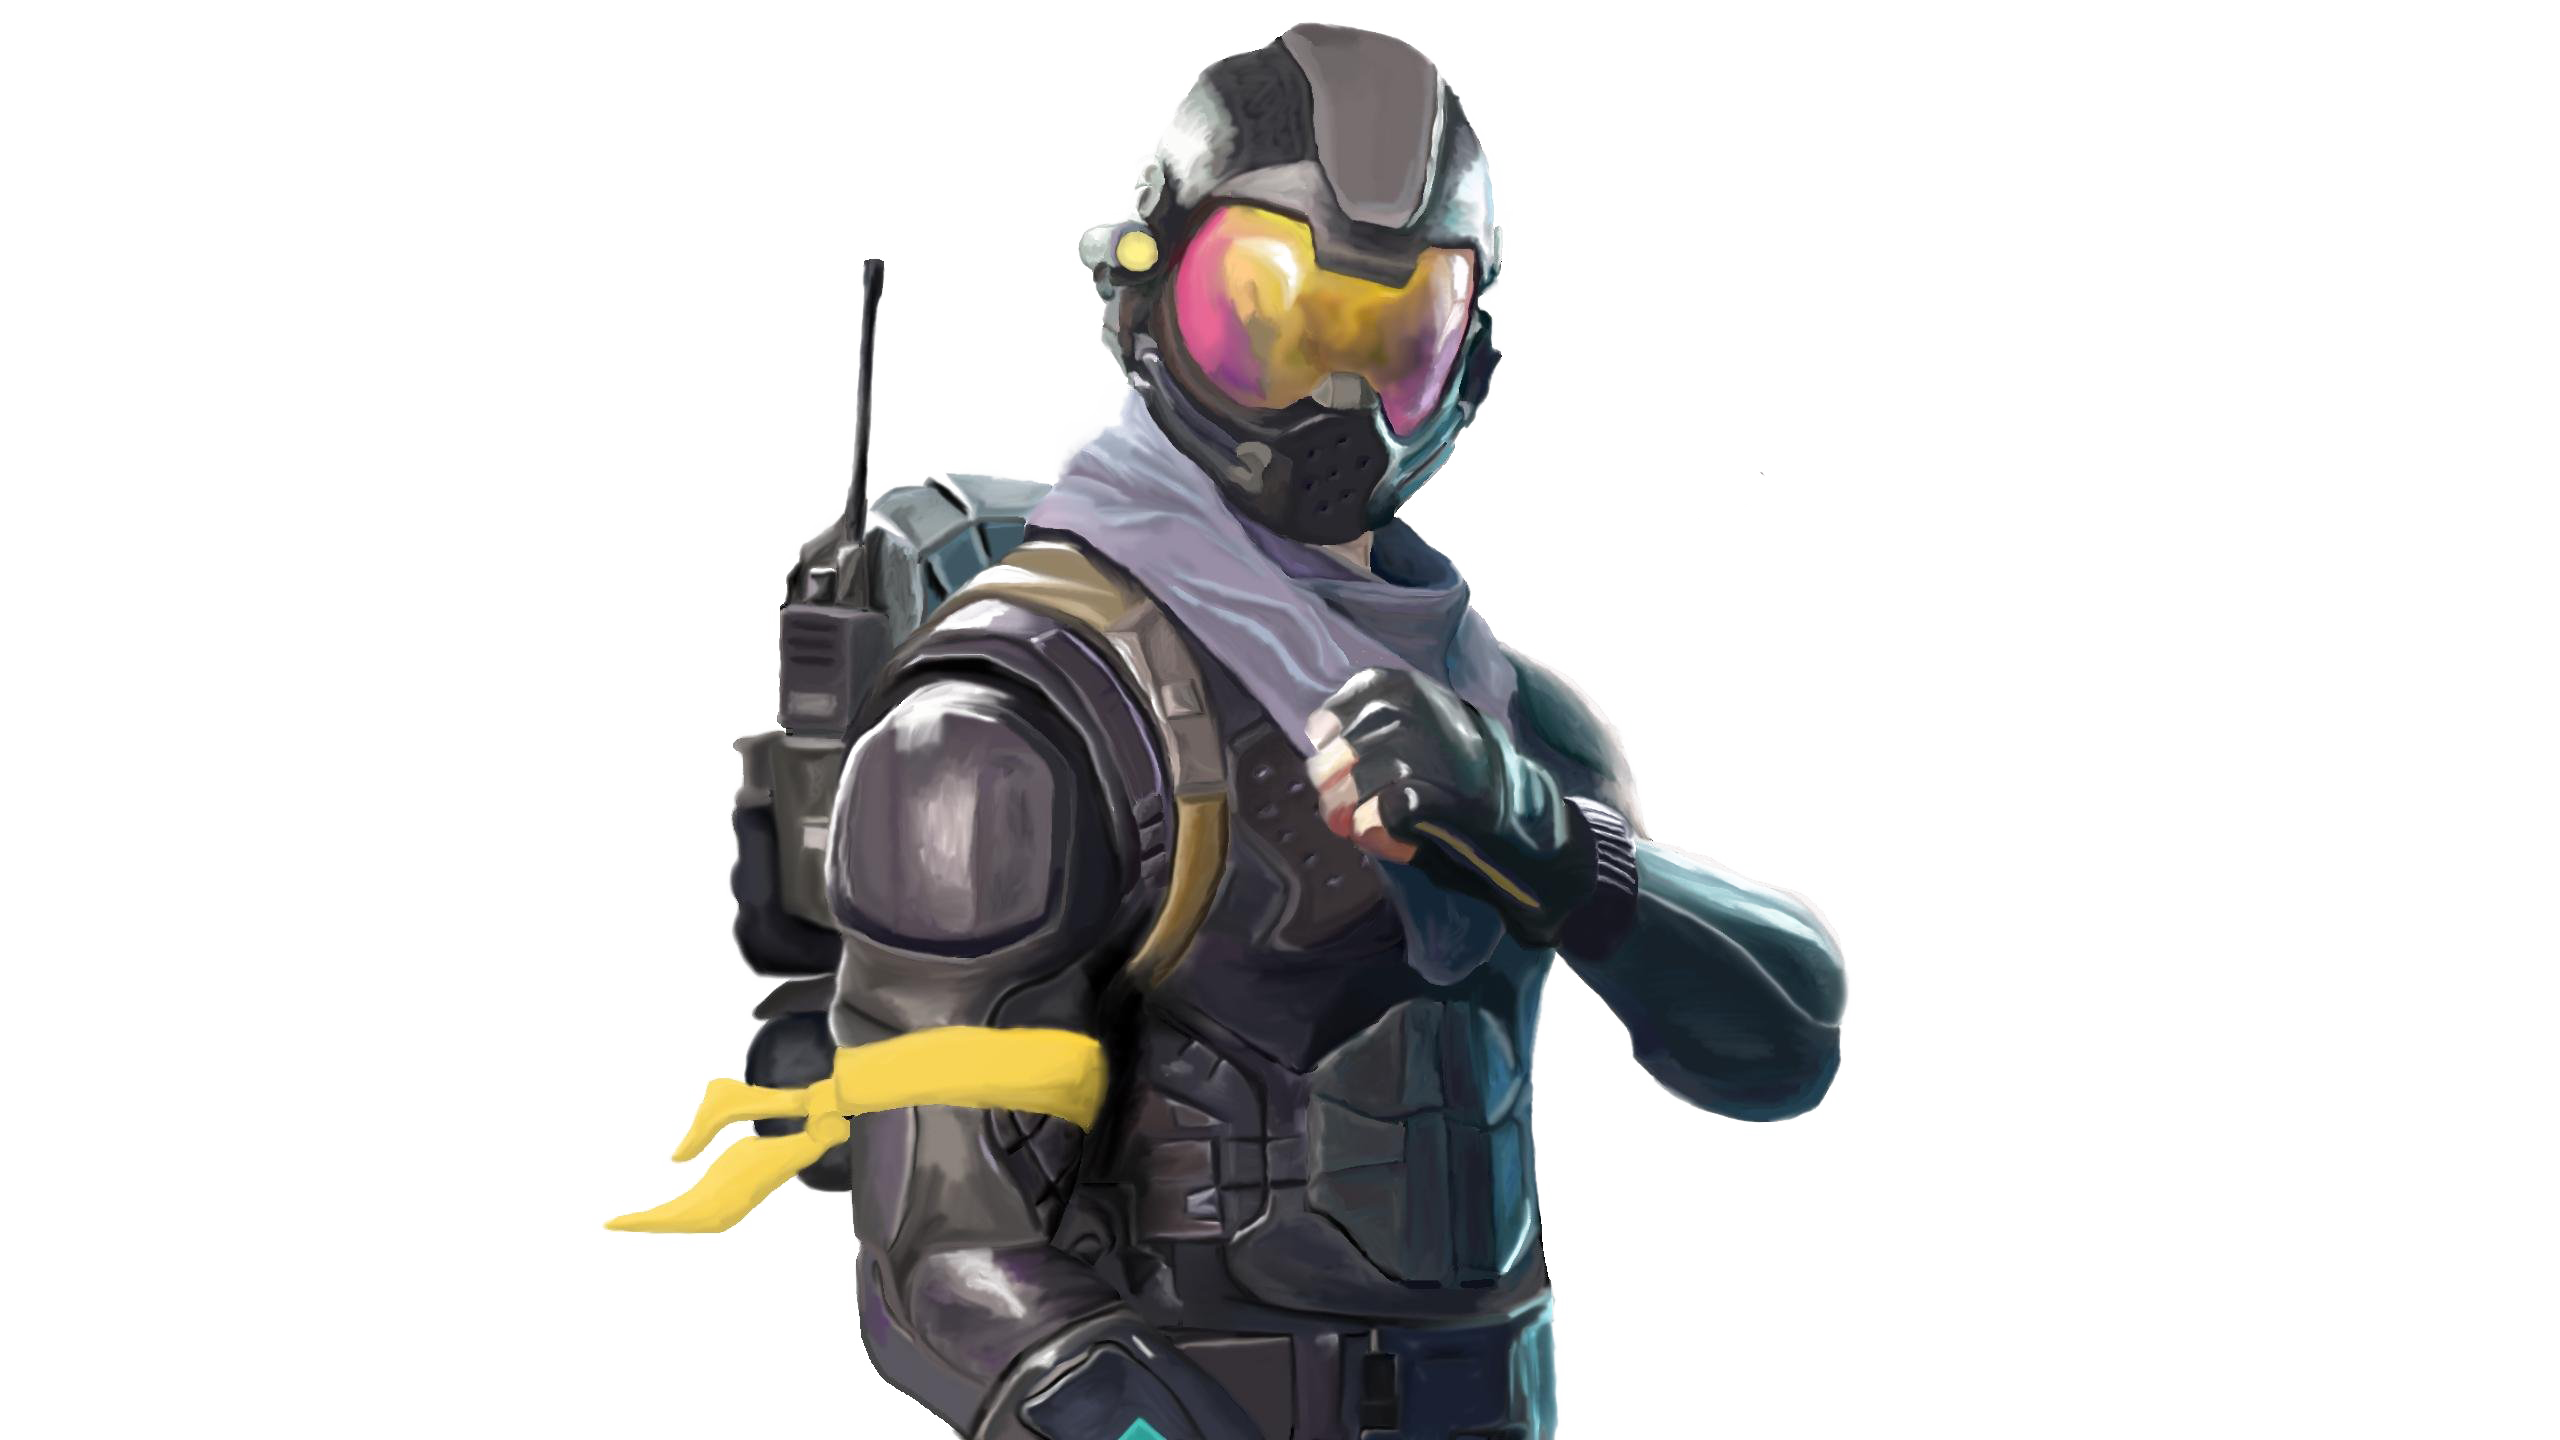 Logo Transparent Background Wallpaper Fortnite Pics